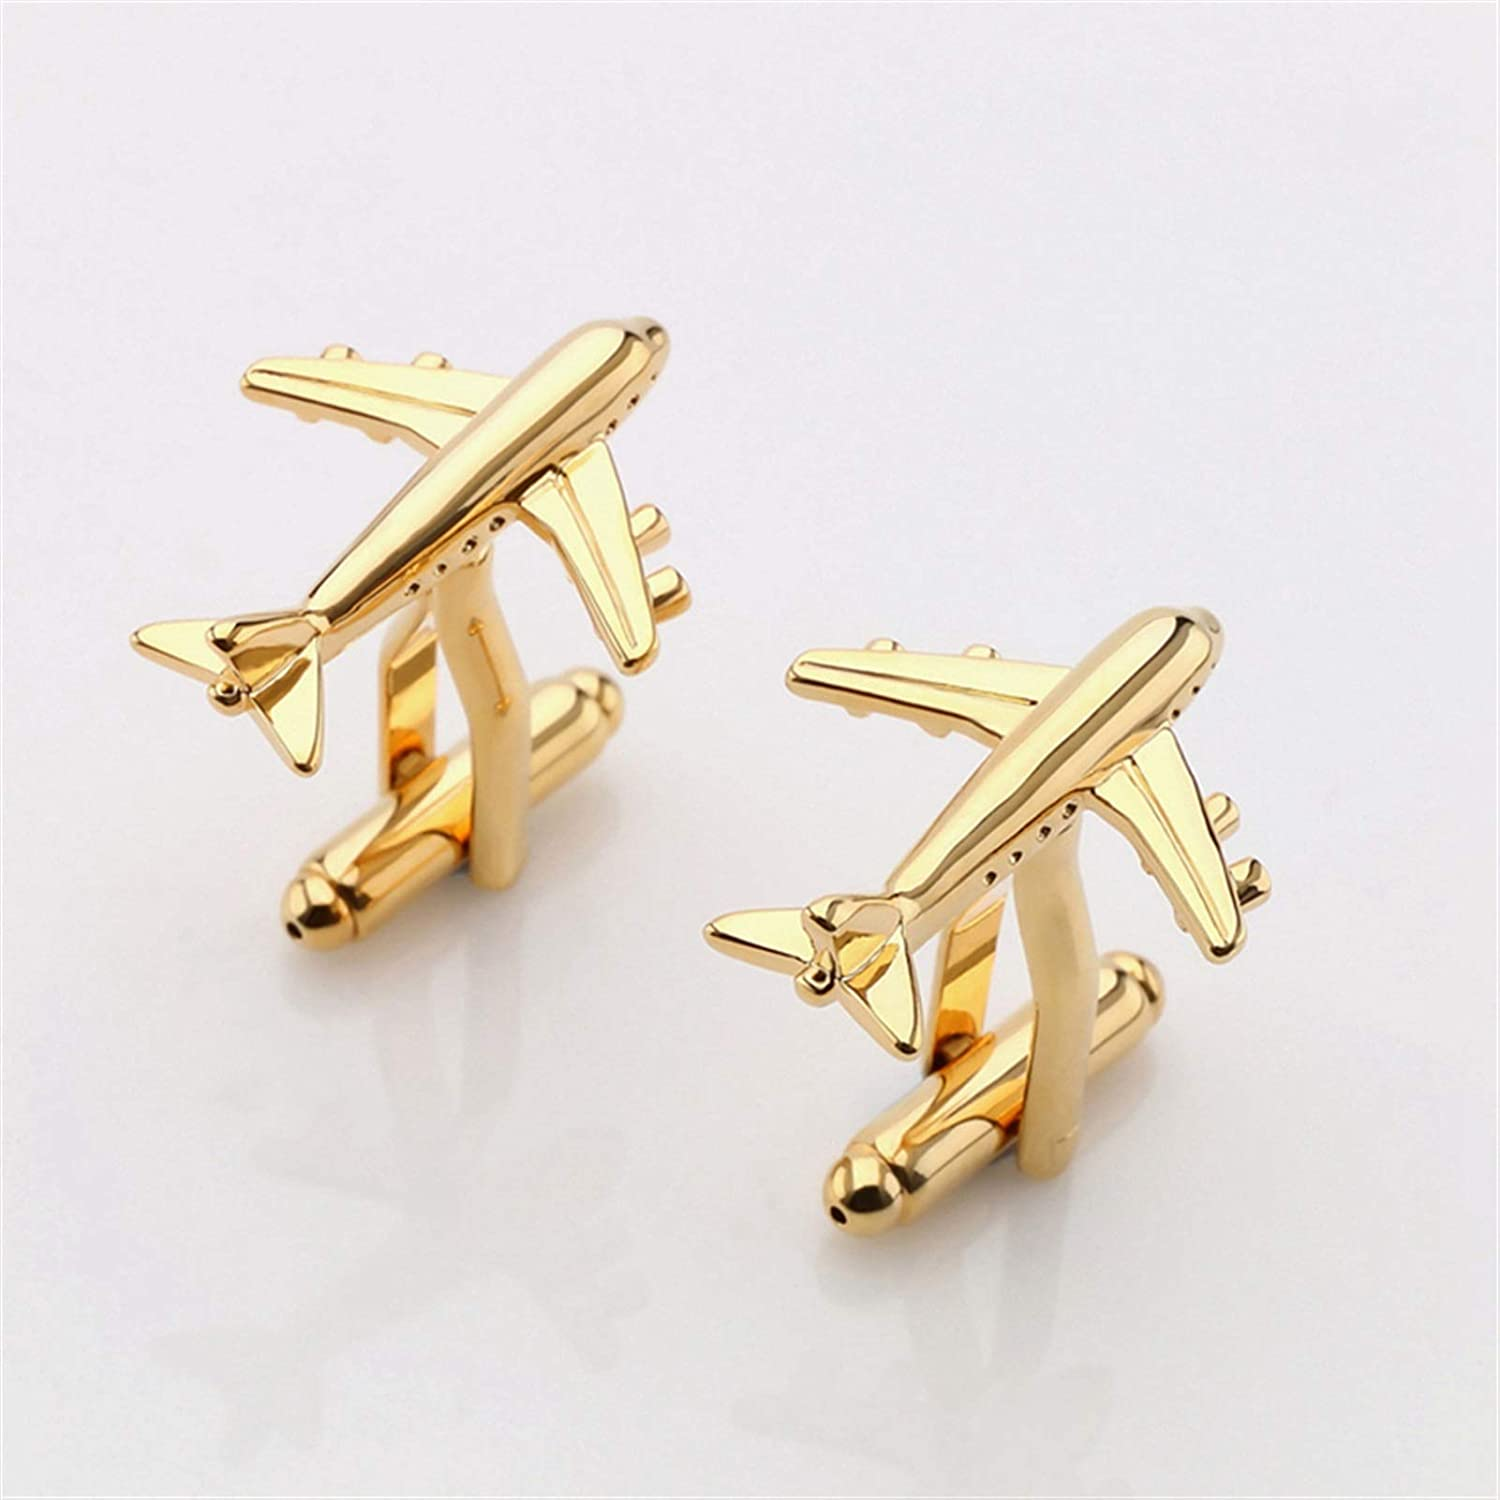 AIHONG Exquisite Real tie Clip Fashion Airplane Shape Cufflinks Men's Lightweight Airplane Design Cufflinks Men's Metal Airplane Cufflinks for Wedding Business Gift (Metal Color : Gold Color)